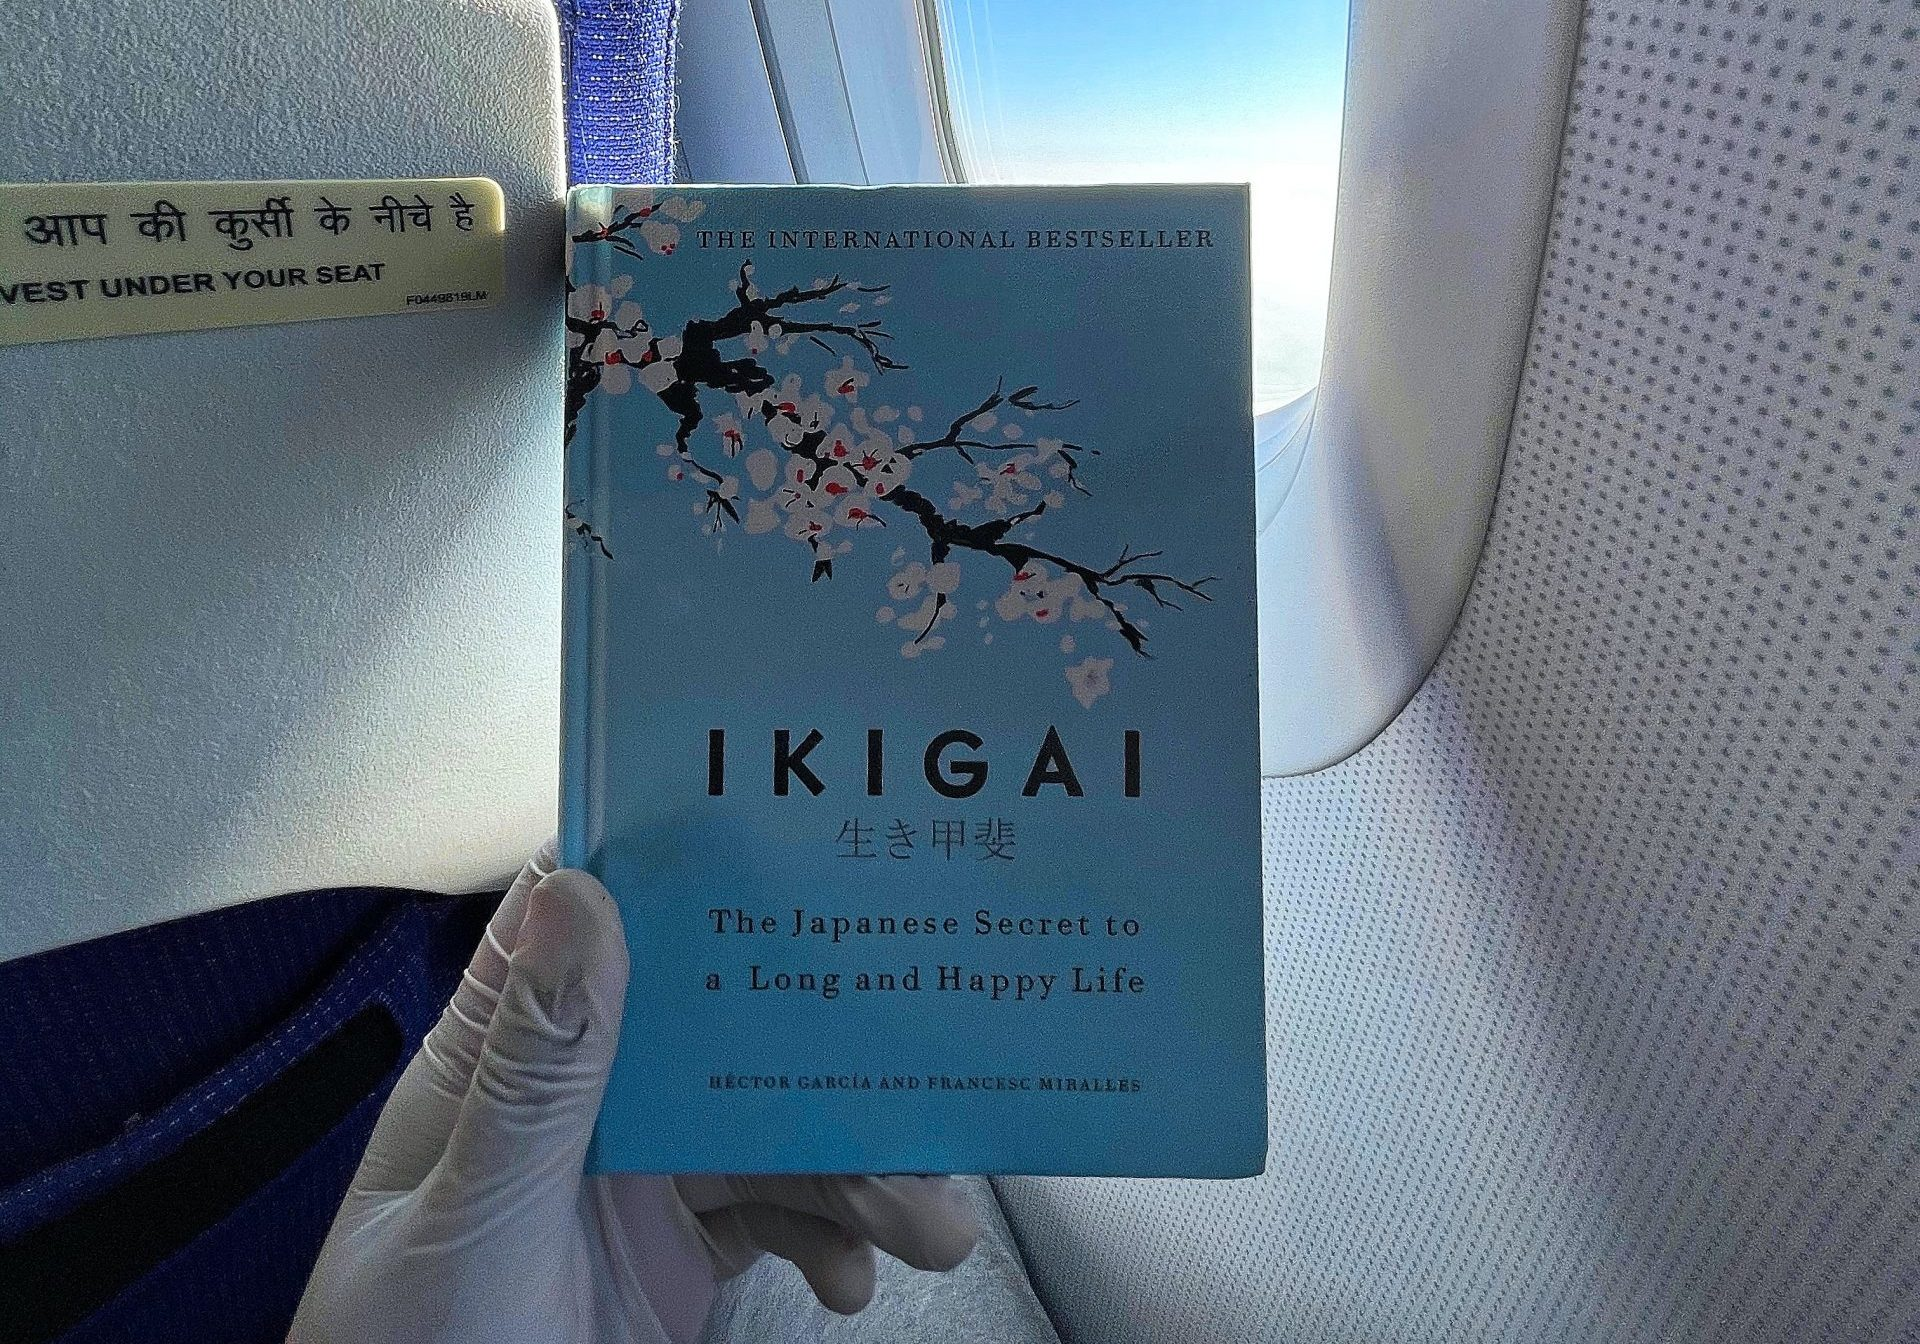 The Ikigai